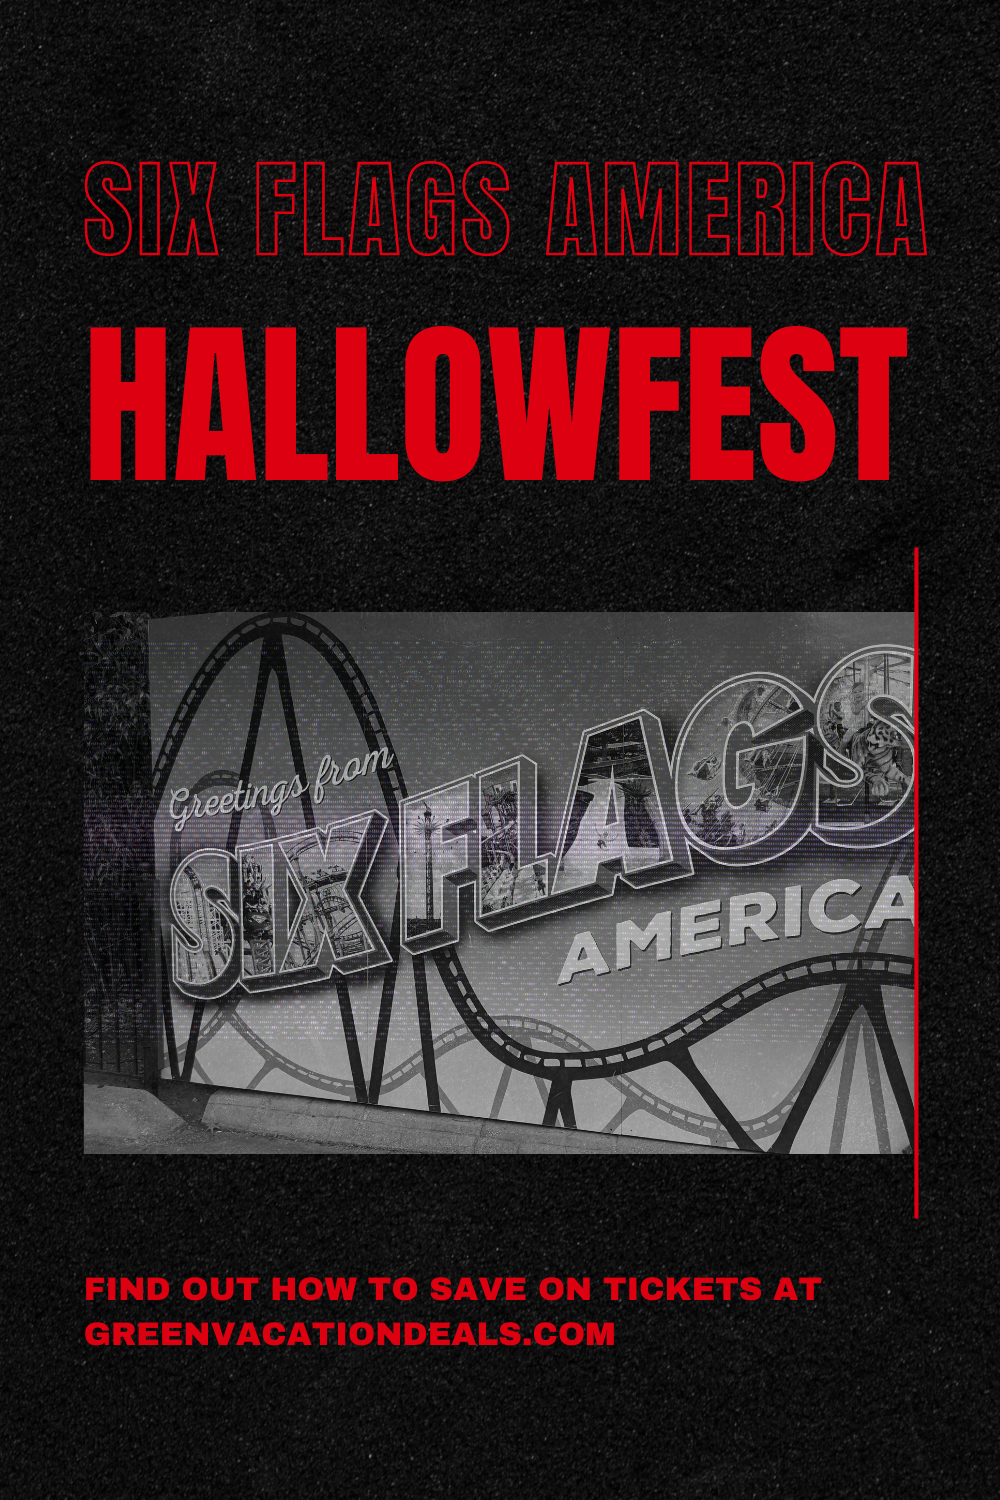 Halloween 2020 Dc Area Events HALLOWFEST at Six Flags America Promo Code | Green Vacation Deals